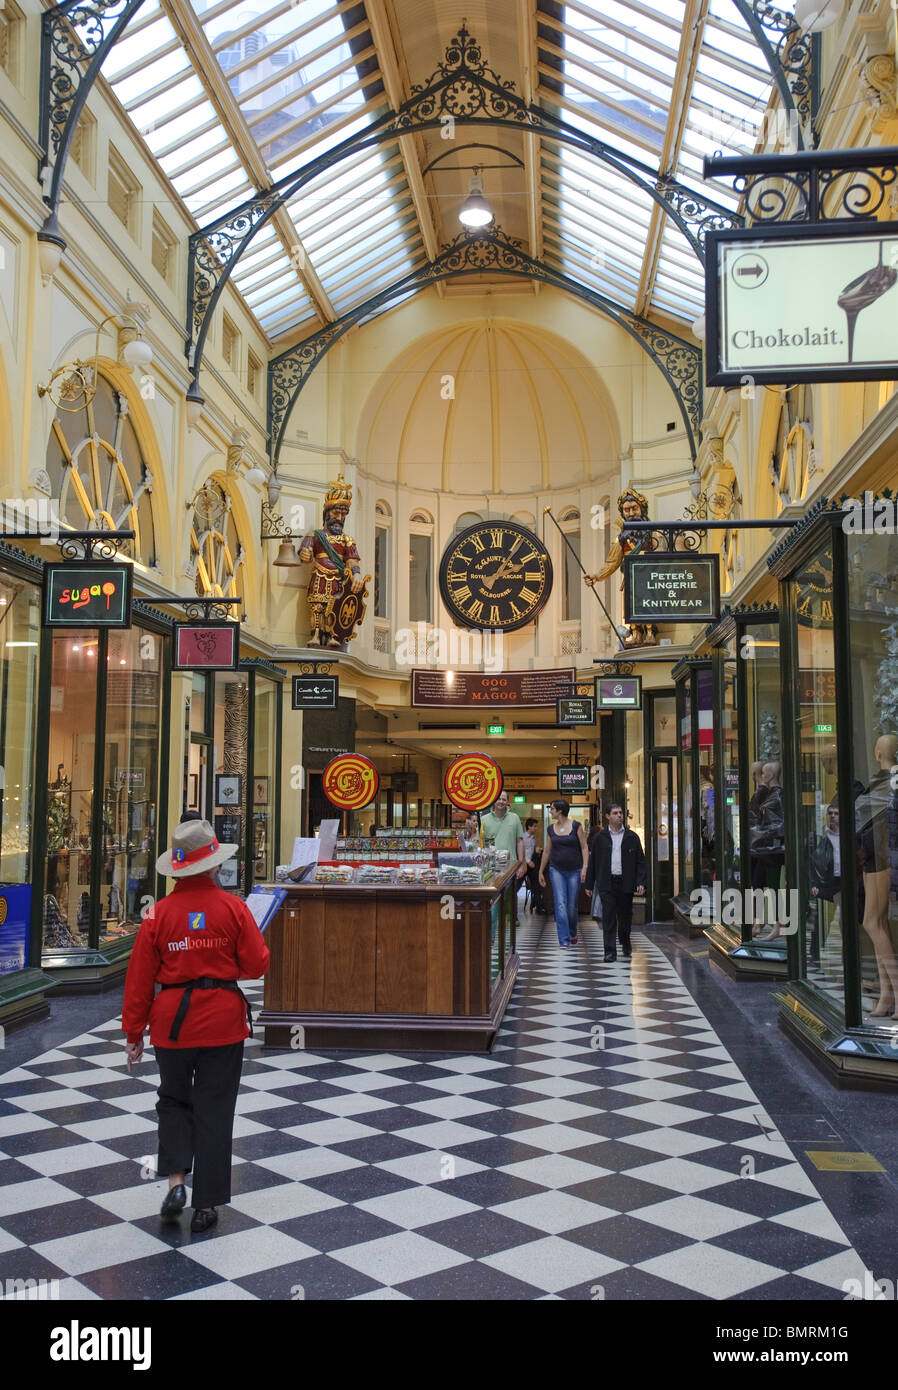 The Royal Arcade in Melbourne Central Business District - Stock Image